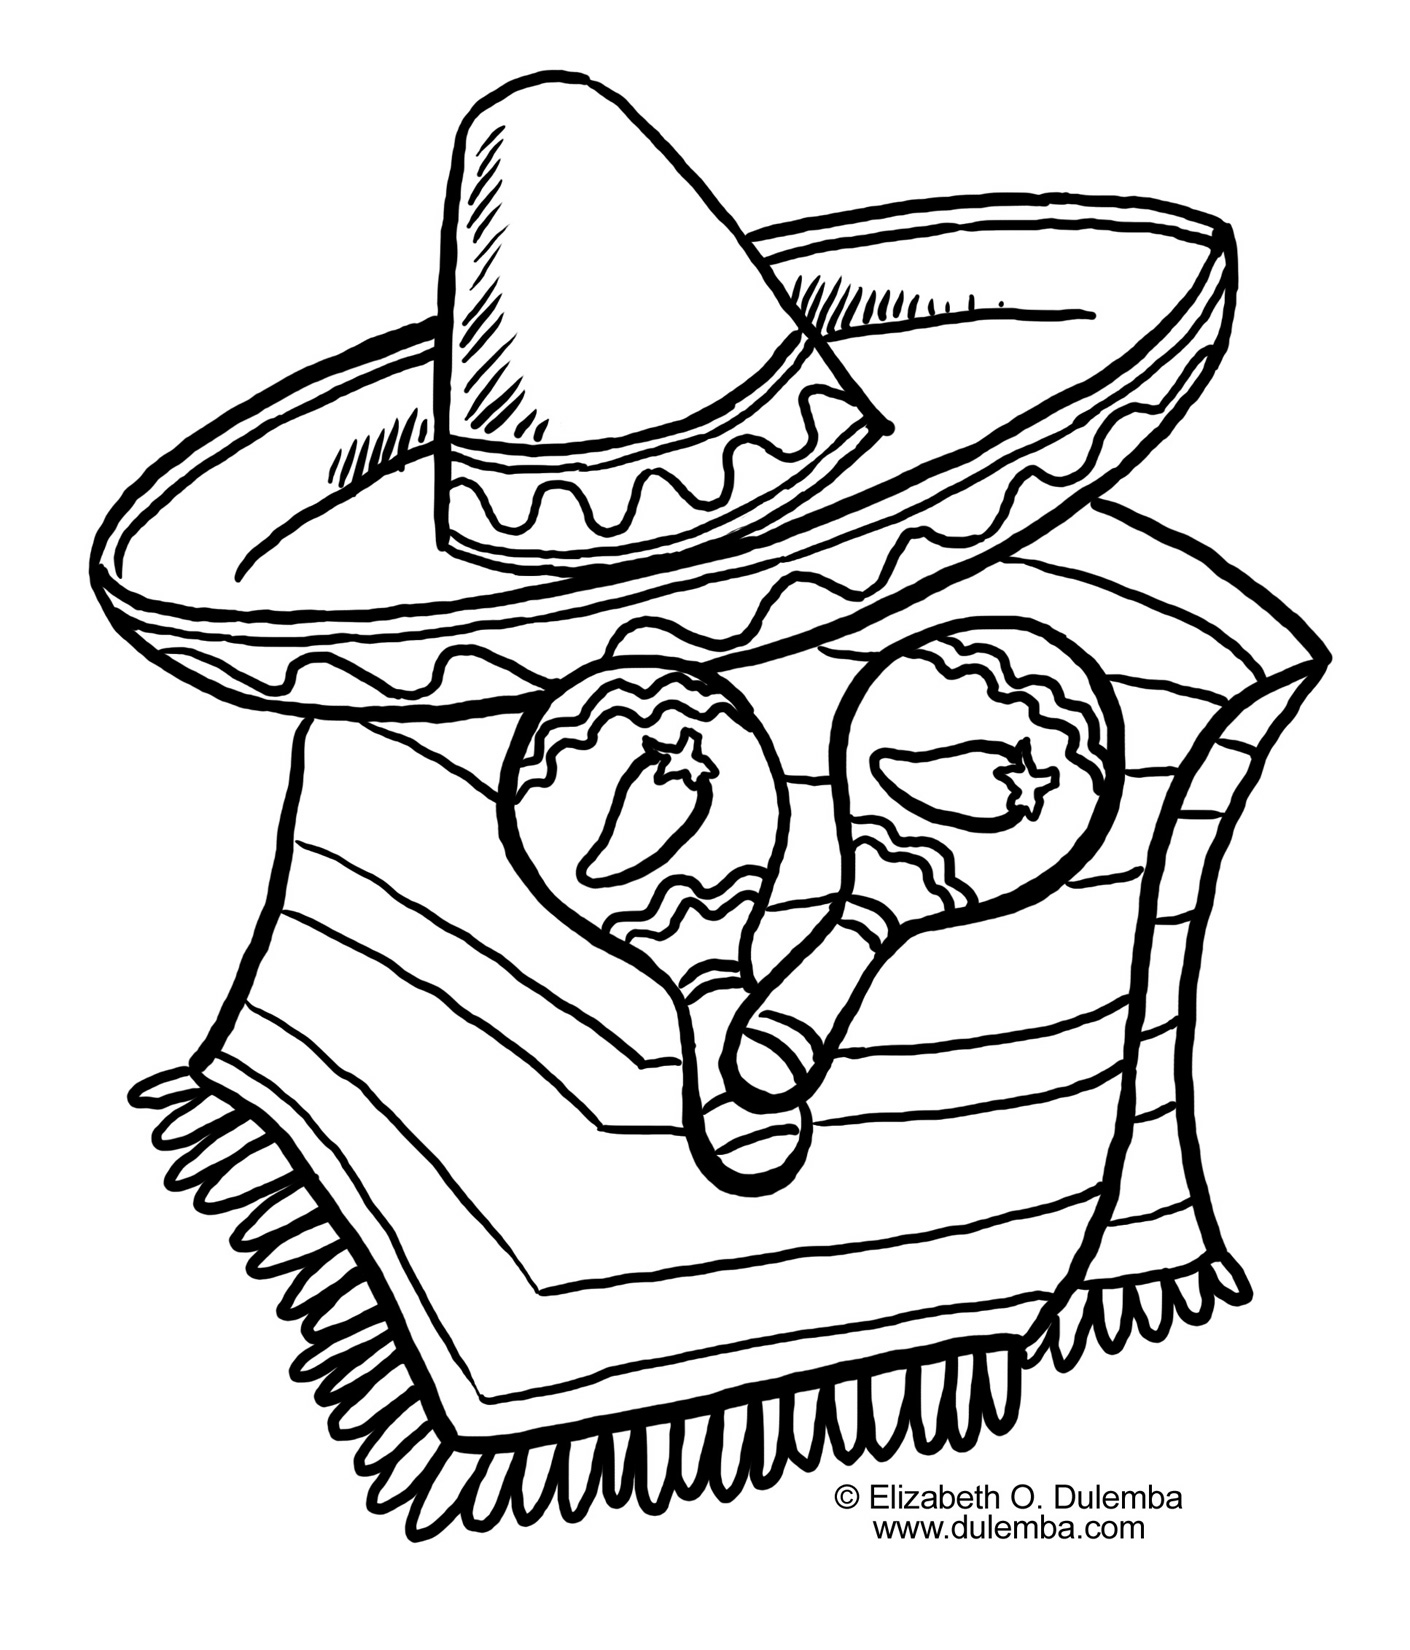 Mexican Flag Drawing at GetDrawings.com | Free for personal use ...